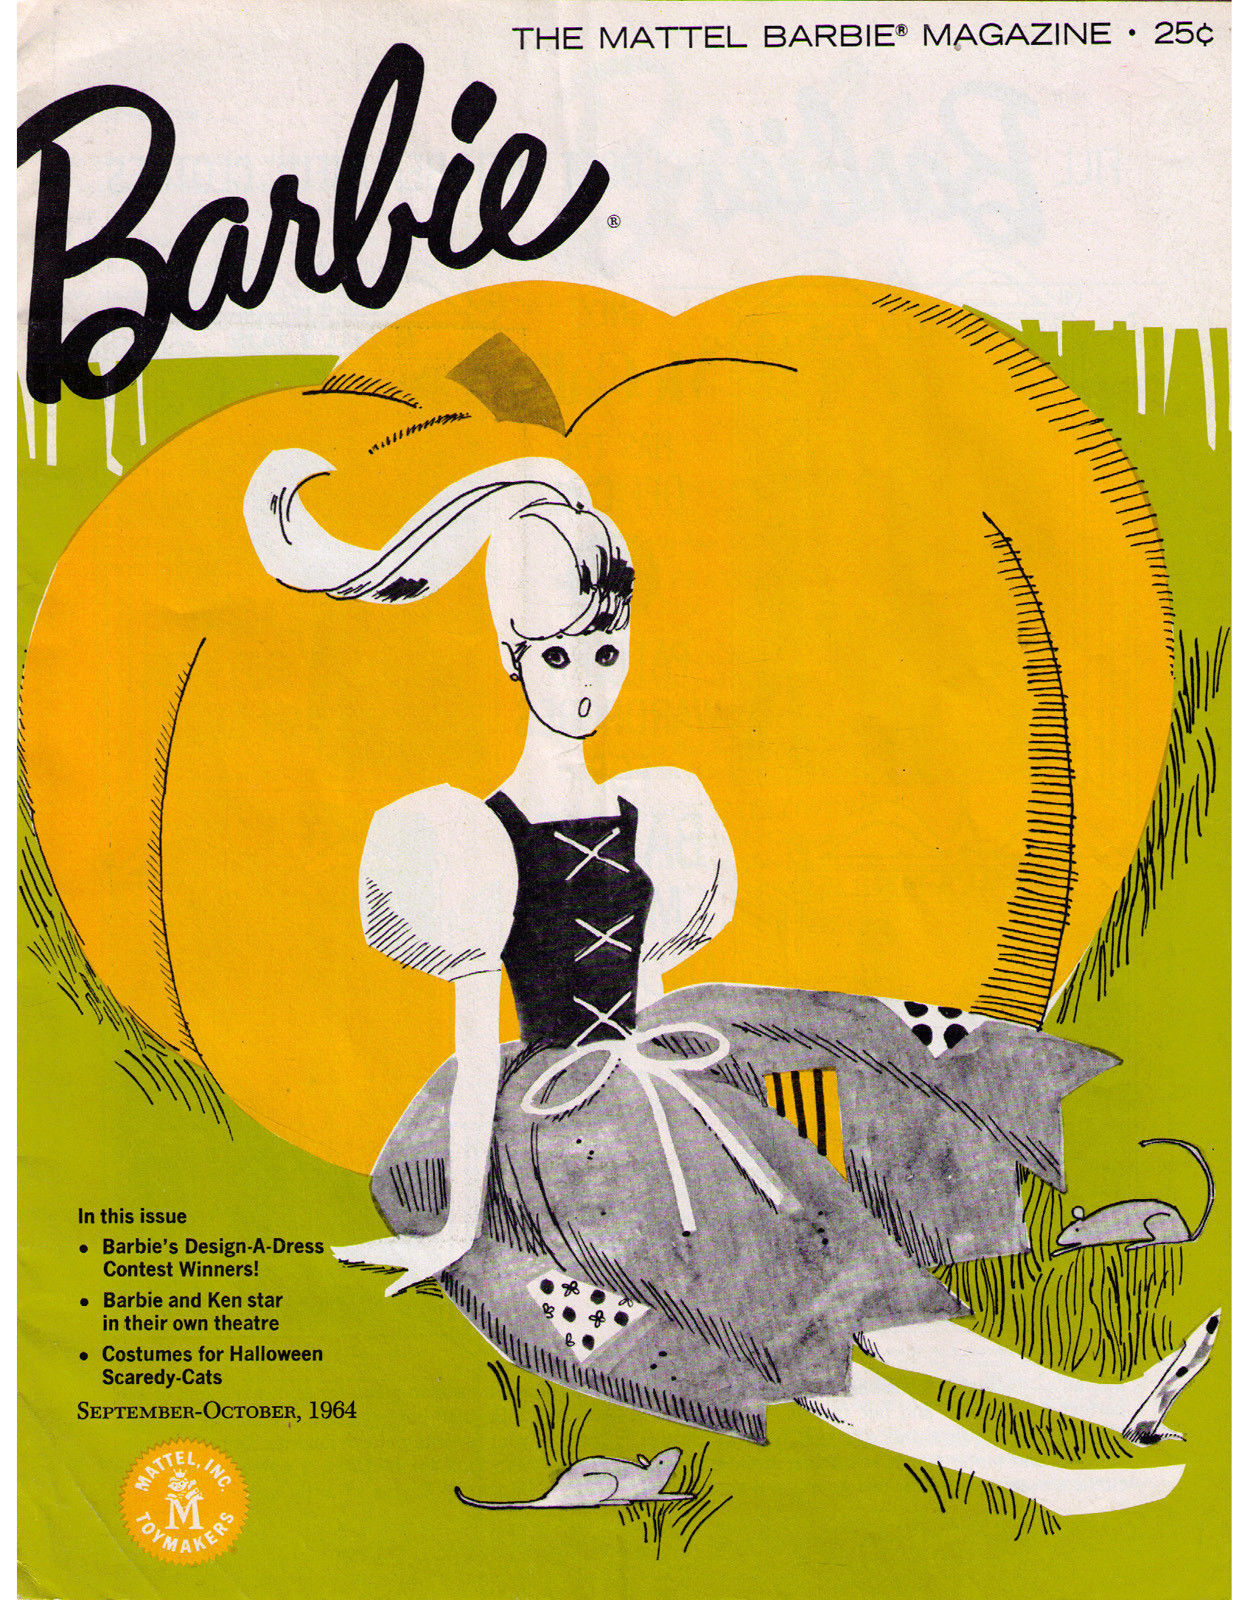 Primary image for BARBIE MAGAZINE - Sept-Oct 1964 issue